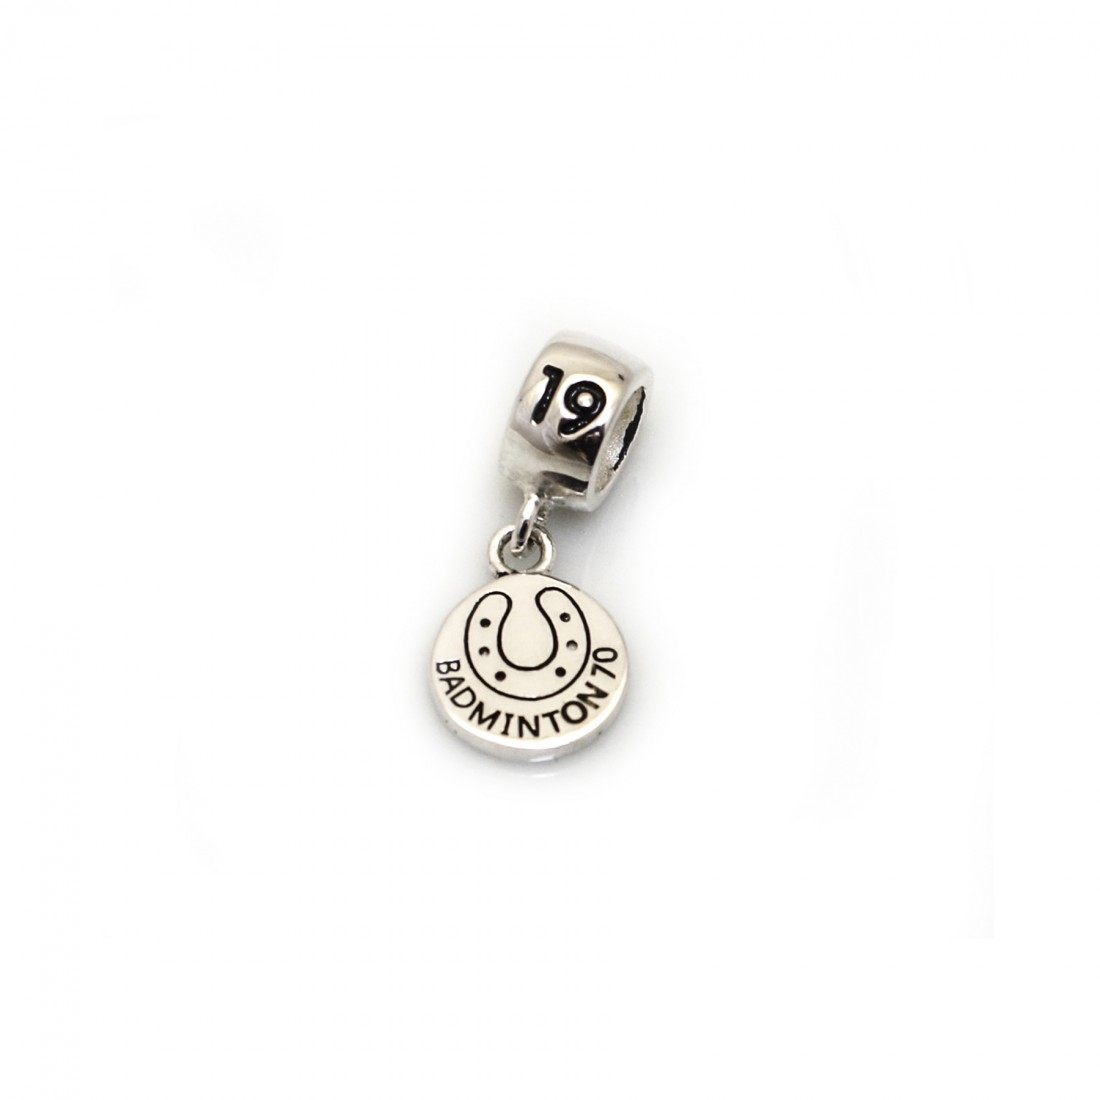 Limited Edition Exclusive Sterling Silver Badminton 2019 Roller Charm